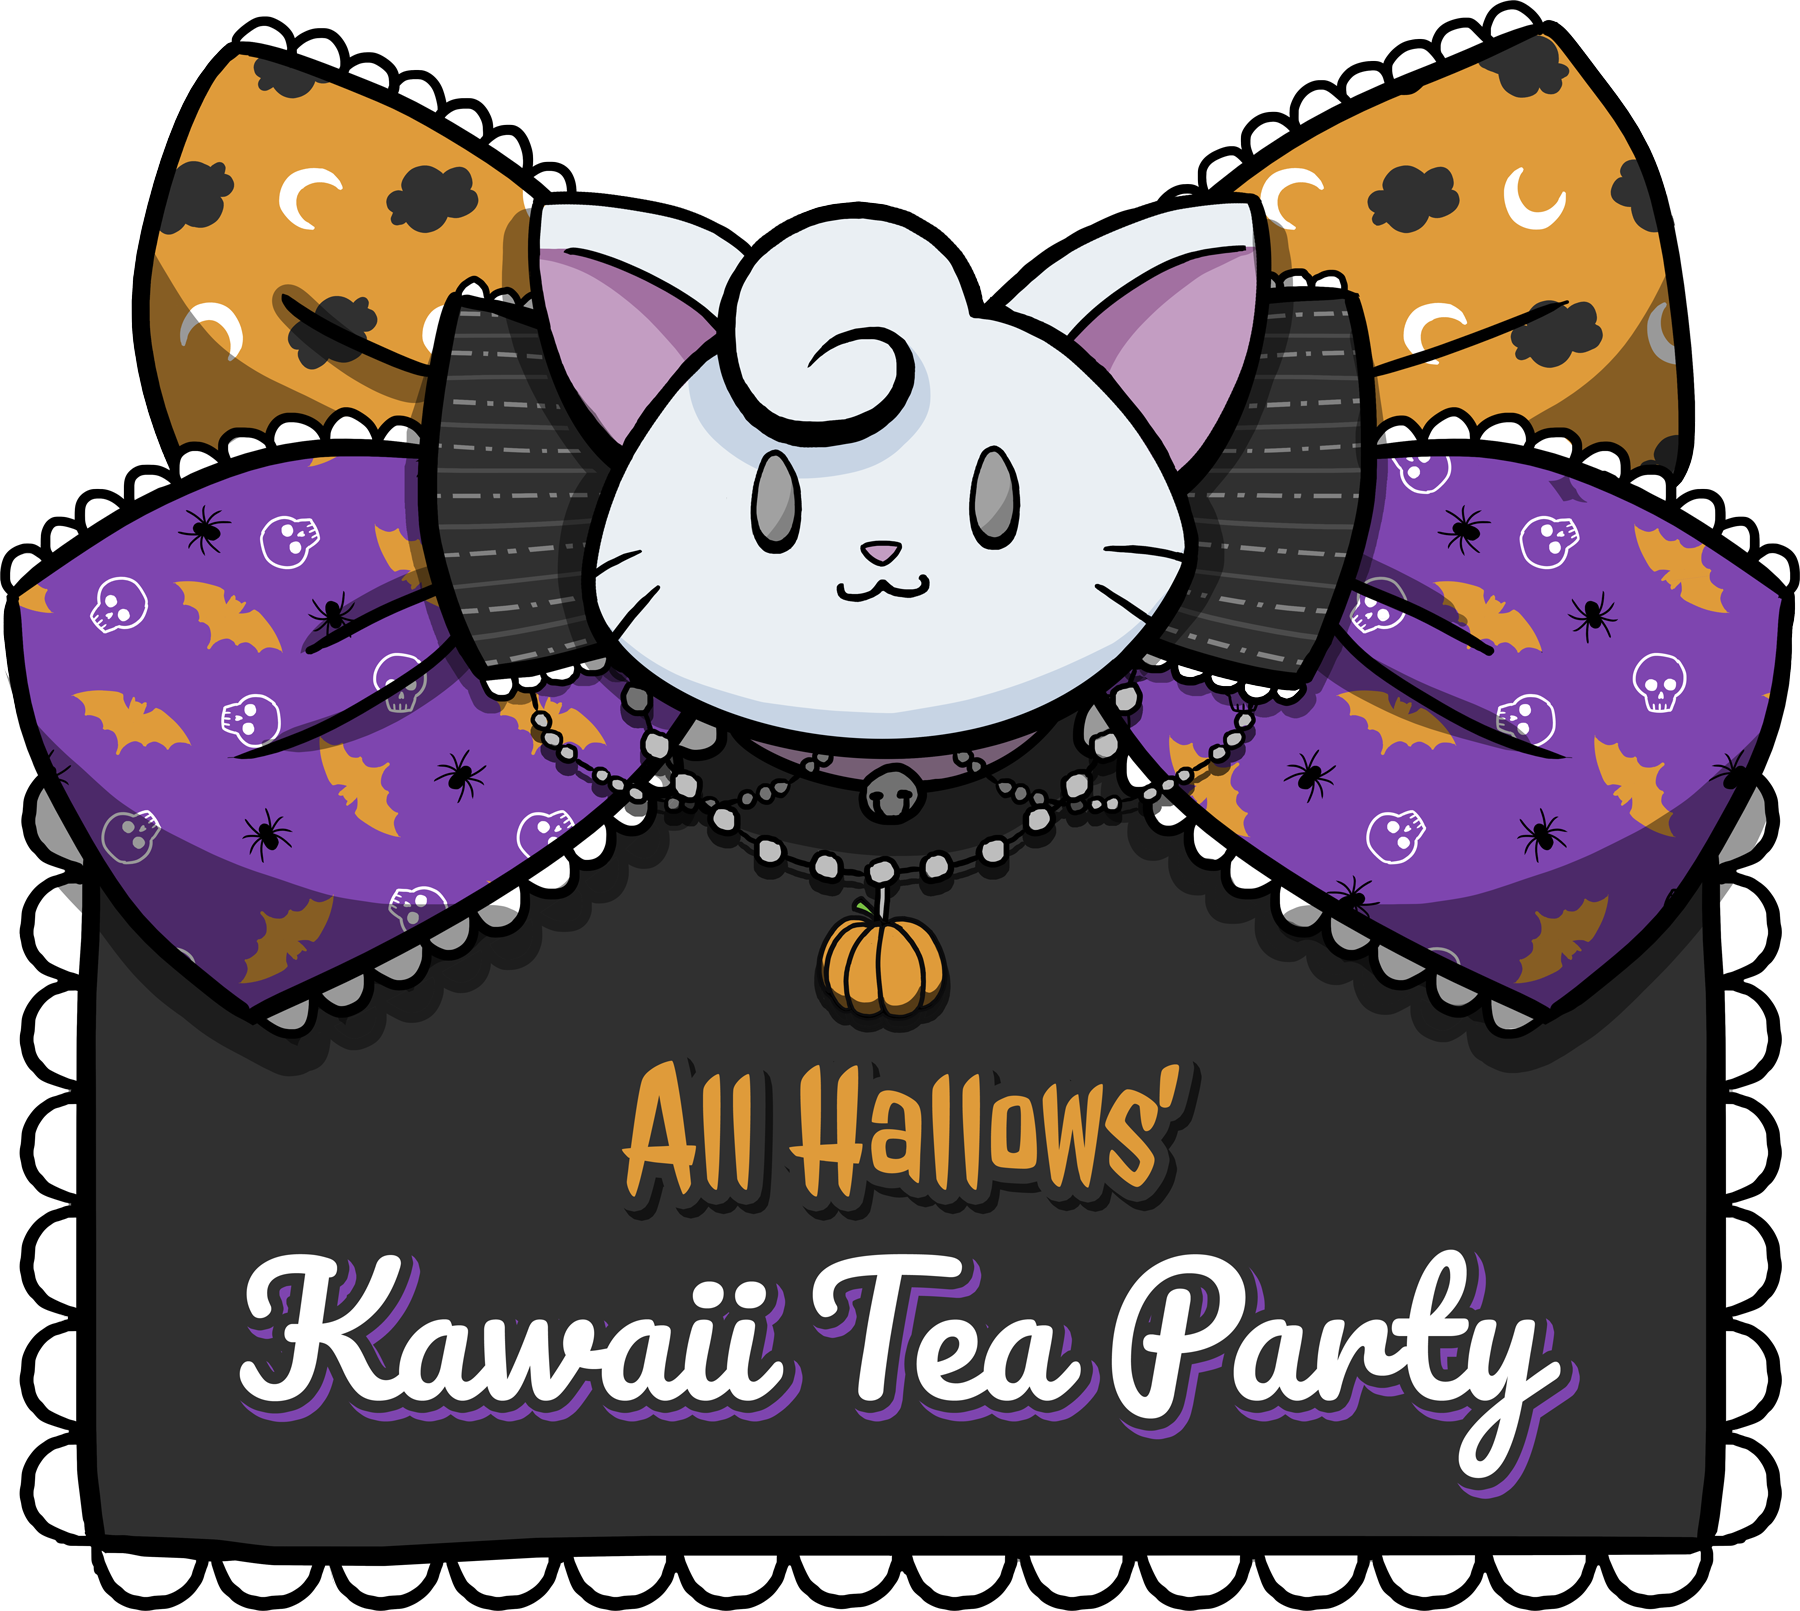 Apple butter cauldron clipart free Kumoricon » All Hallows' Kawaii Lolita and J-Fashion Tea Party free